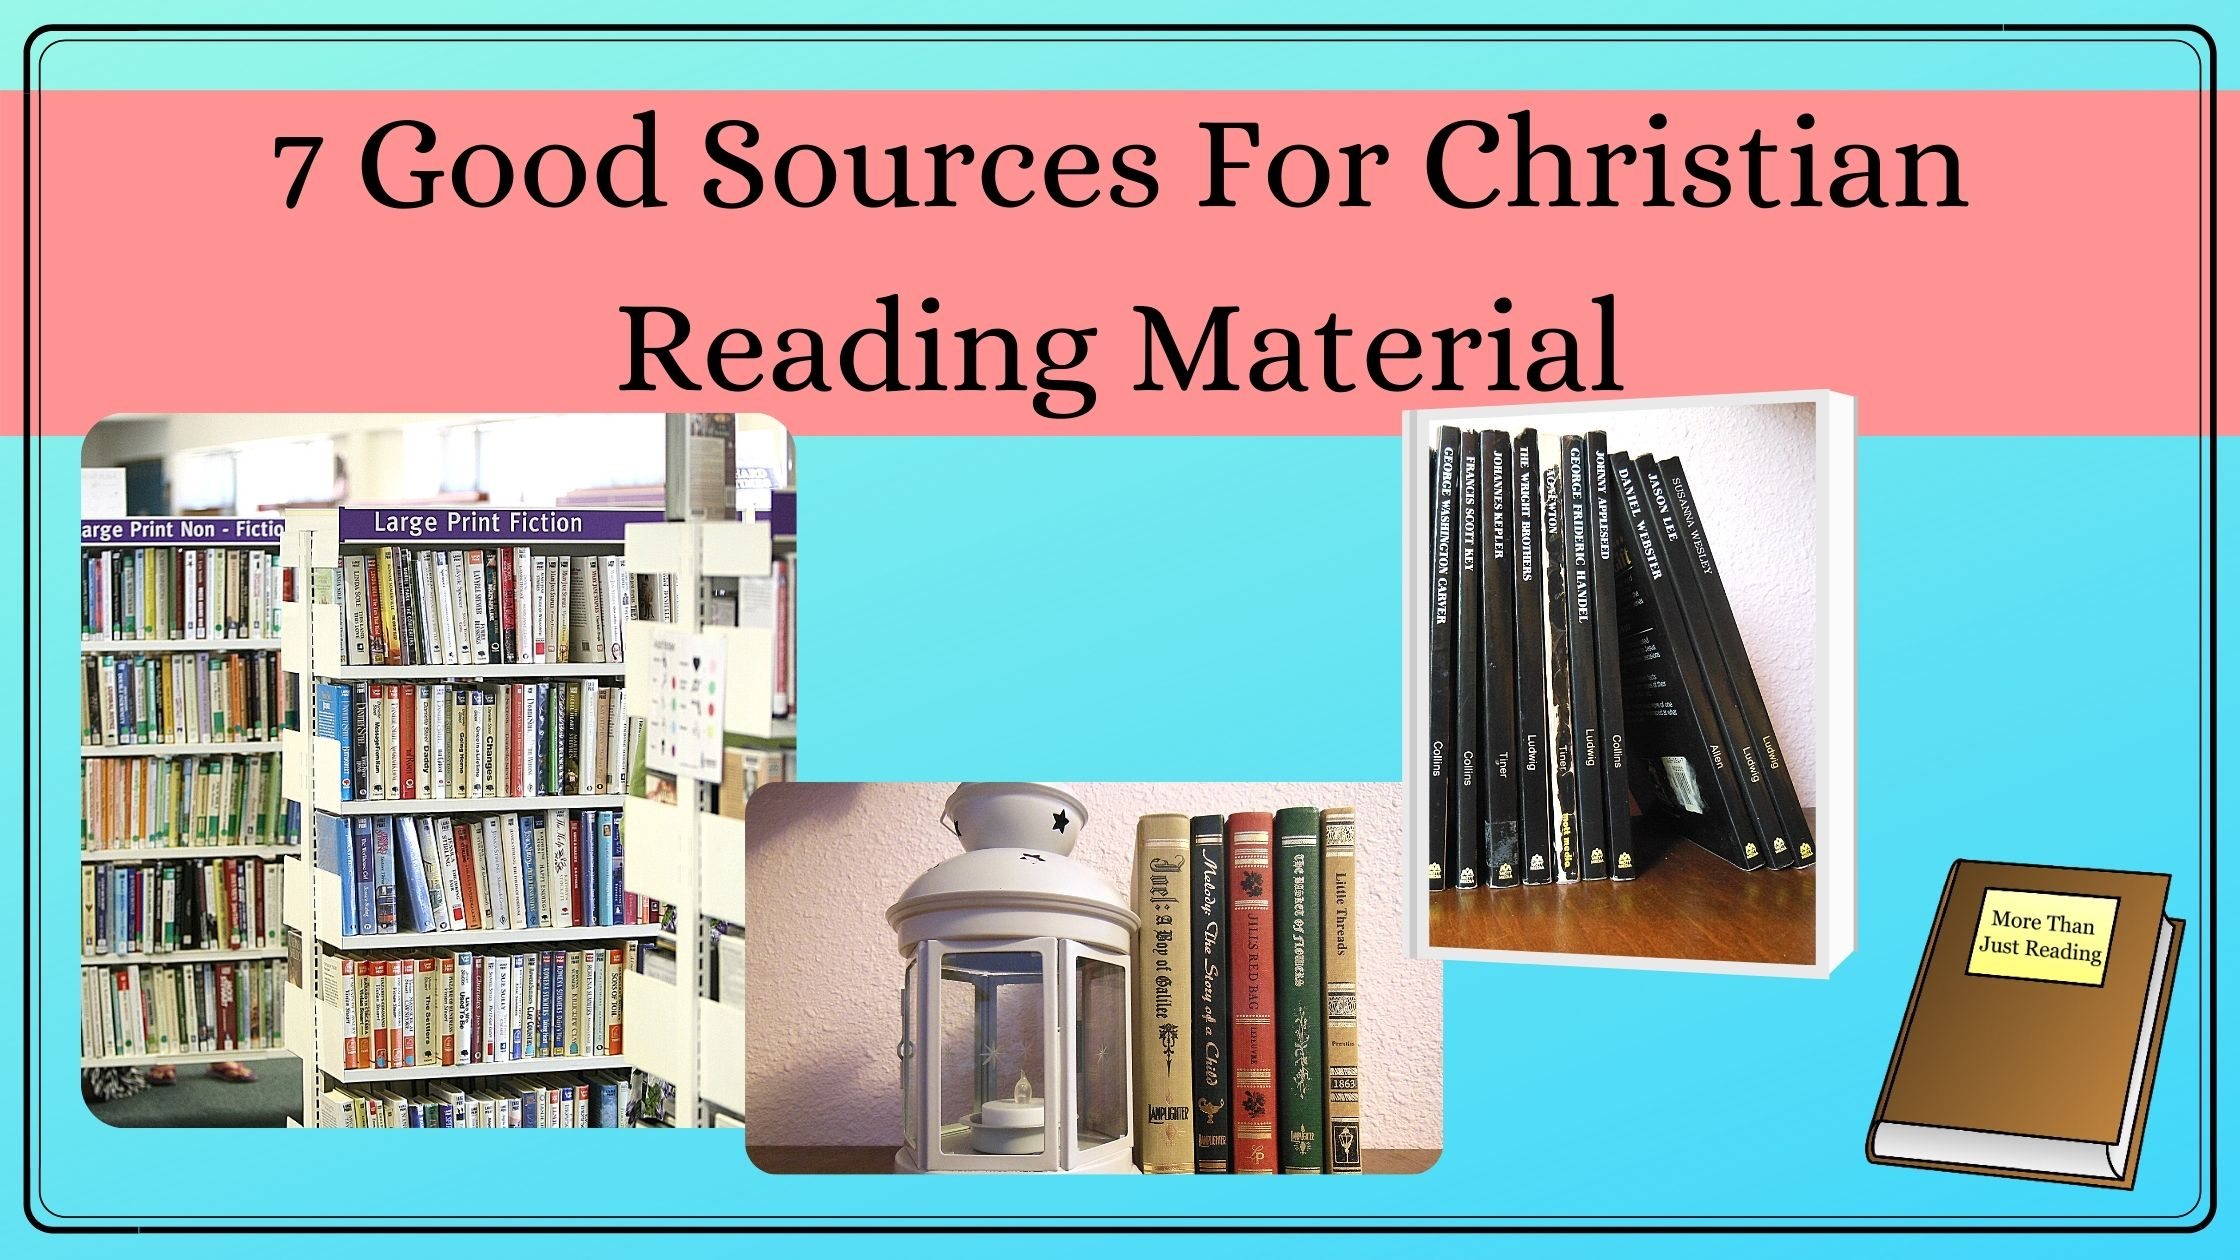 7 good sources for Christian reading material